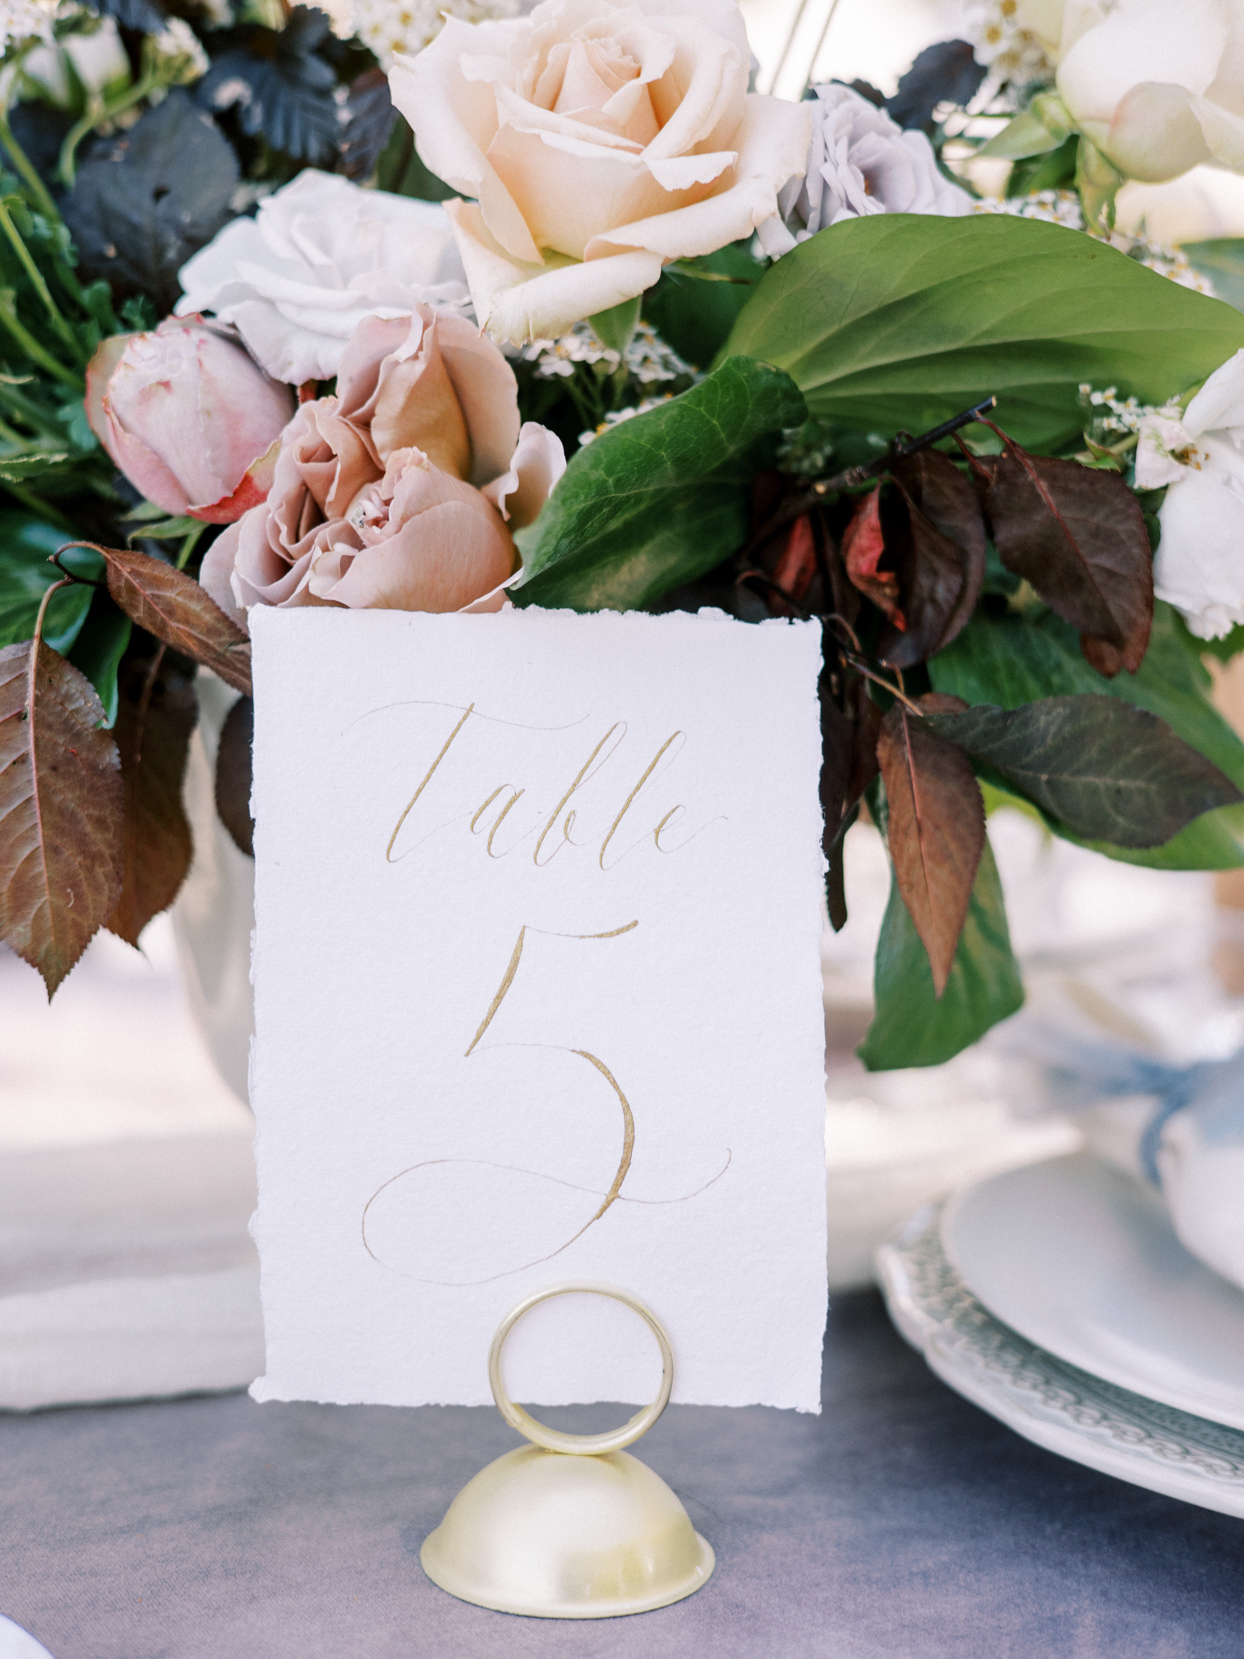 scripted table number for wedding reception